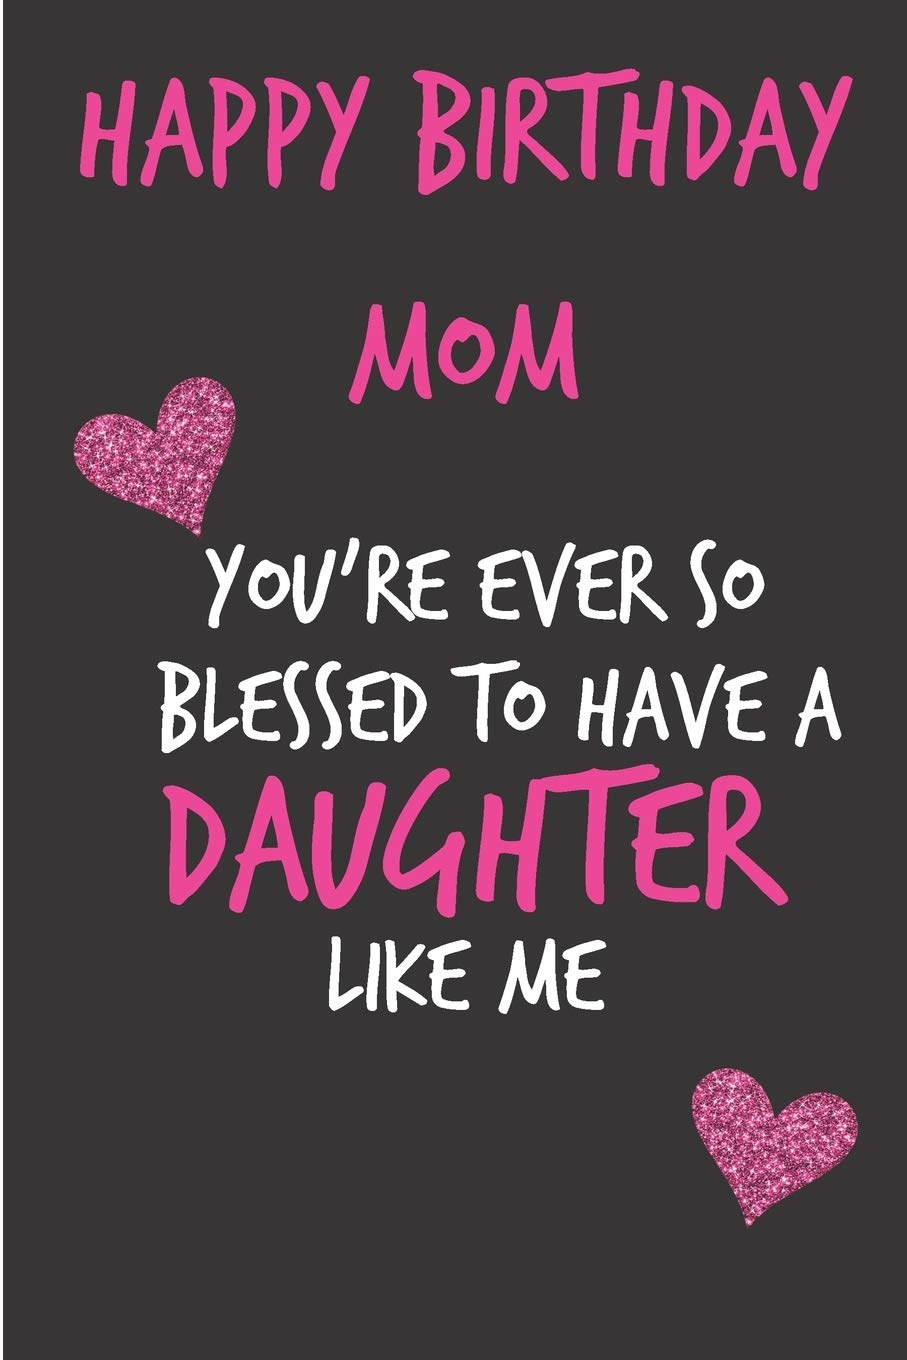 Happy Birthday Mom You Re Ever So Blessed To Have A Daughter Mother S Day Notebook Funny Gag Cheeky Joke Birthday Journal For Mom Mum Sarcastic Unique Gift Alternative To A Greeting